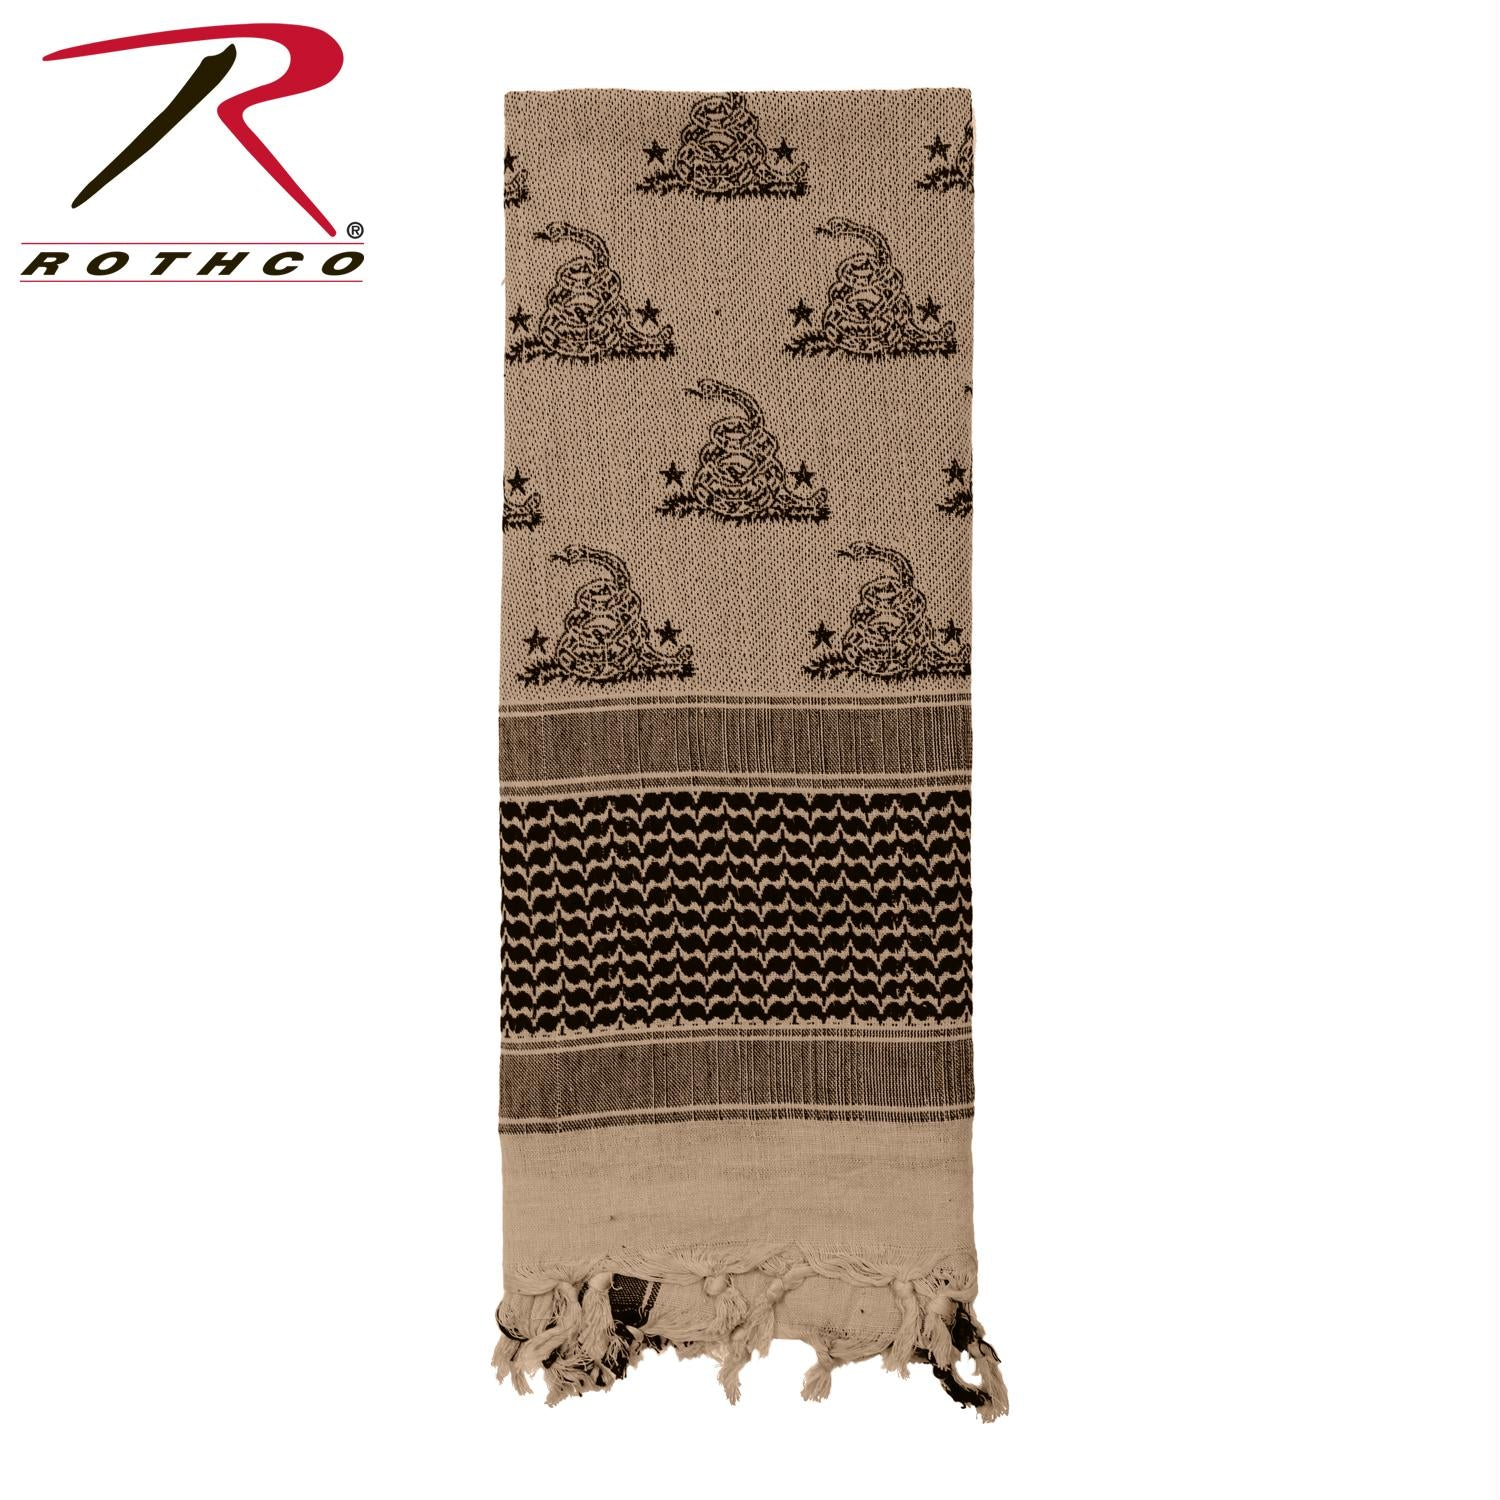 Rothco Gadsden Snake Shemagh Tactical Desert Scarf - Wholesale Army Navy 25ffaa3c4a99